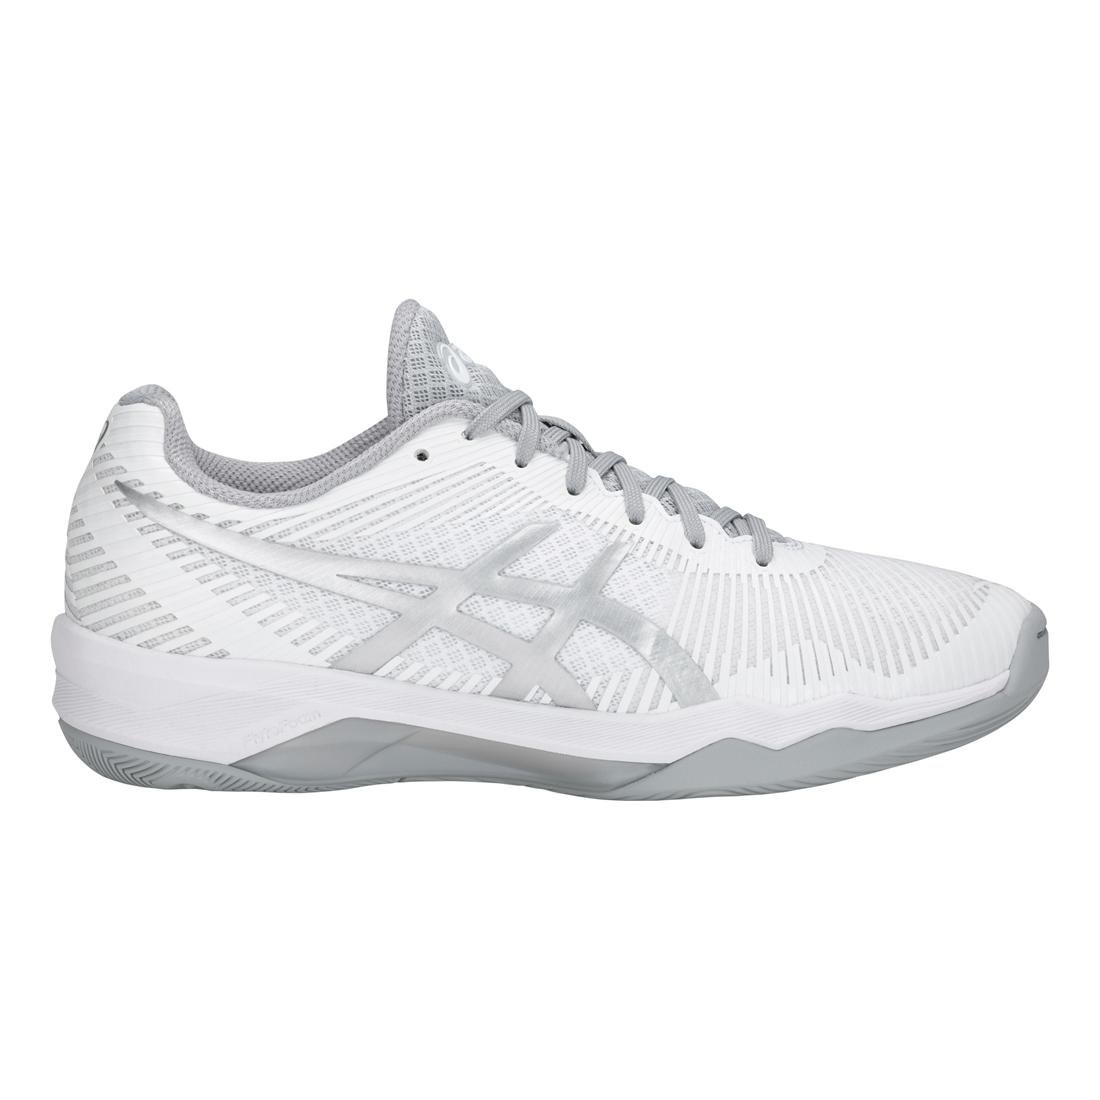 ASICS Women's Volley Elite FF Volleyball Shoe B07895P8L7 11 M US|White/Silver